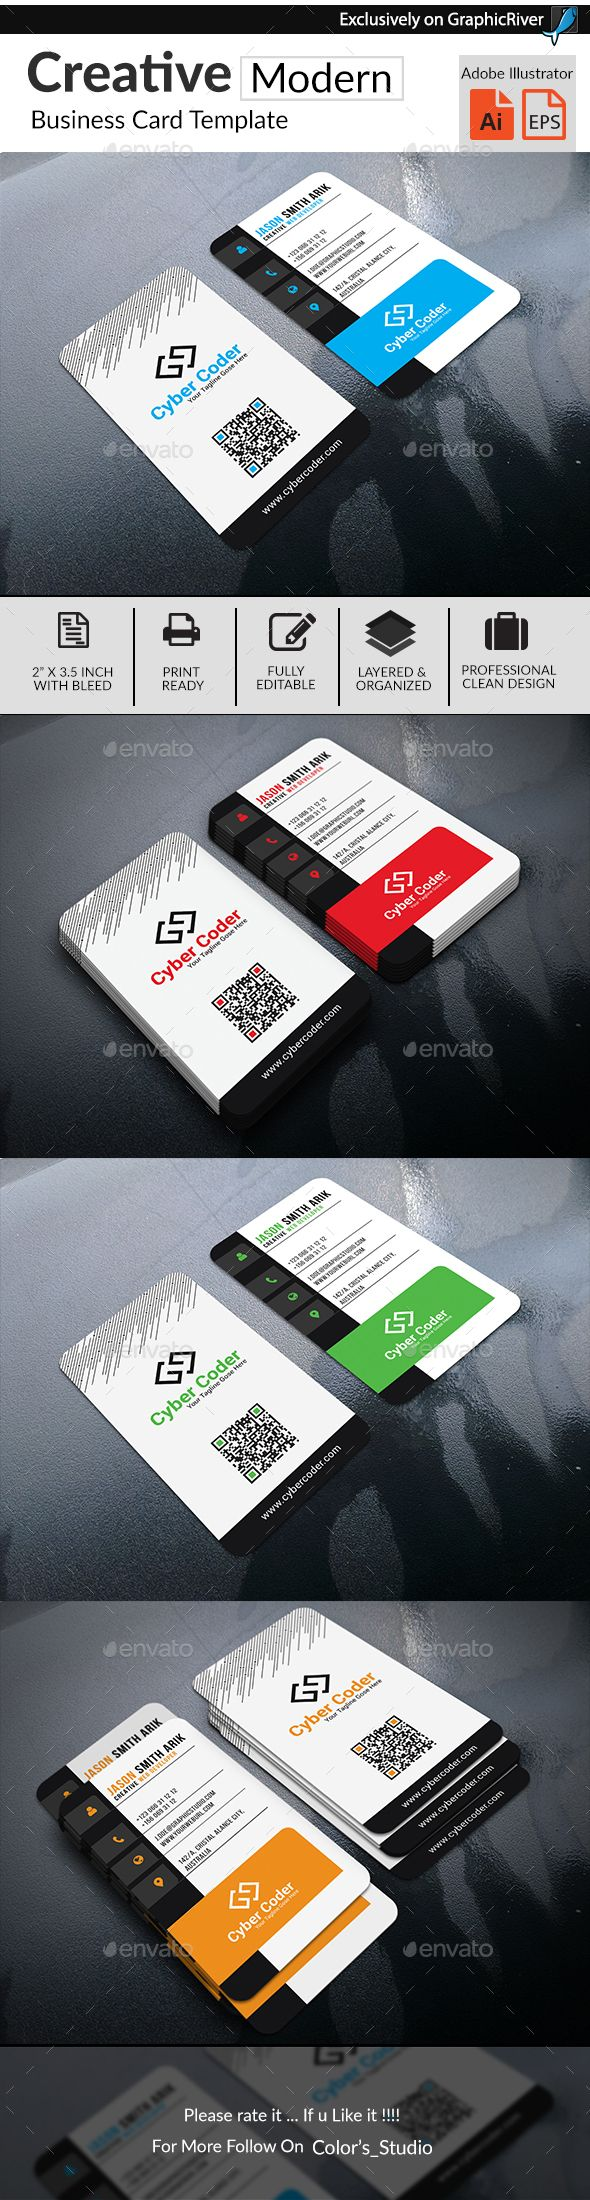 Creative Modern Business Card | Ai illustrator, Business cards and ...